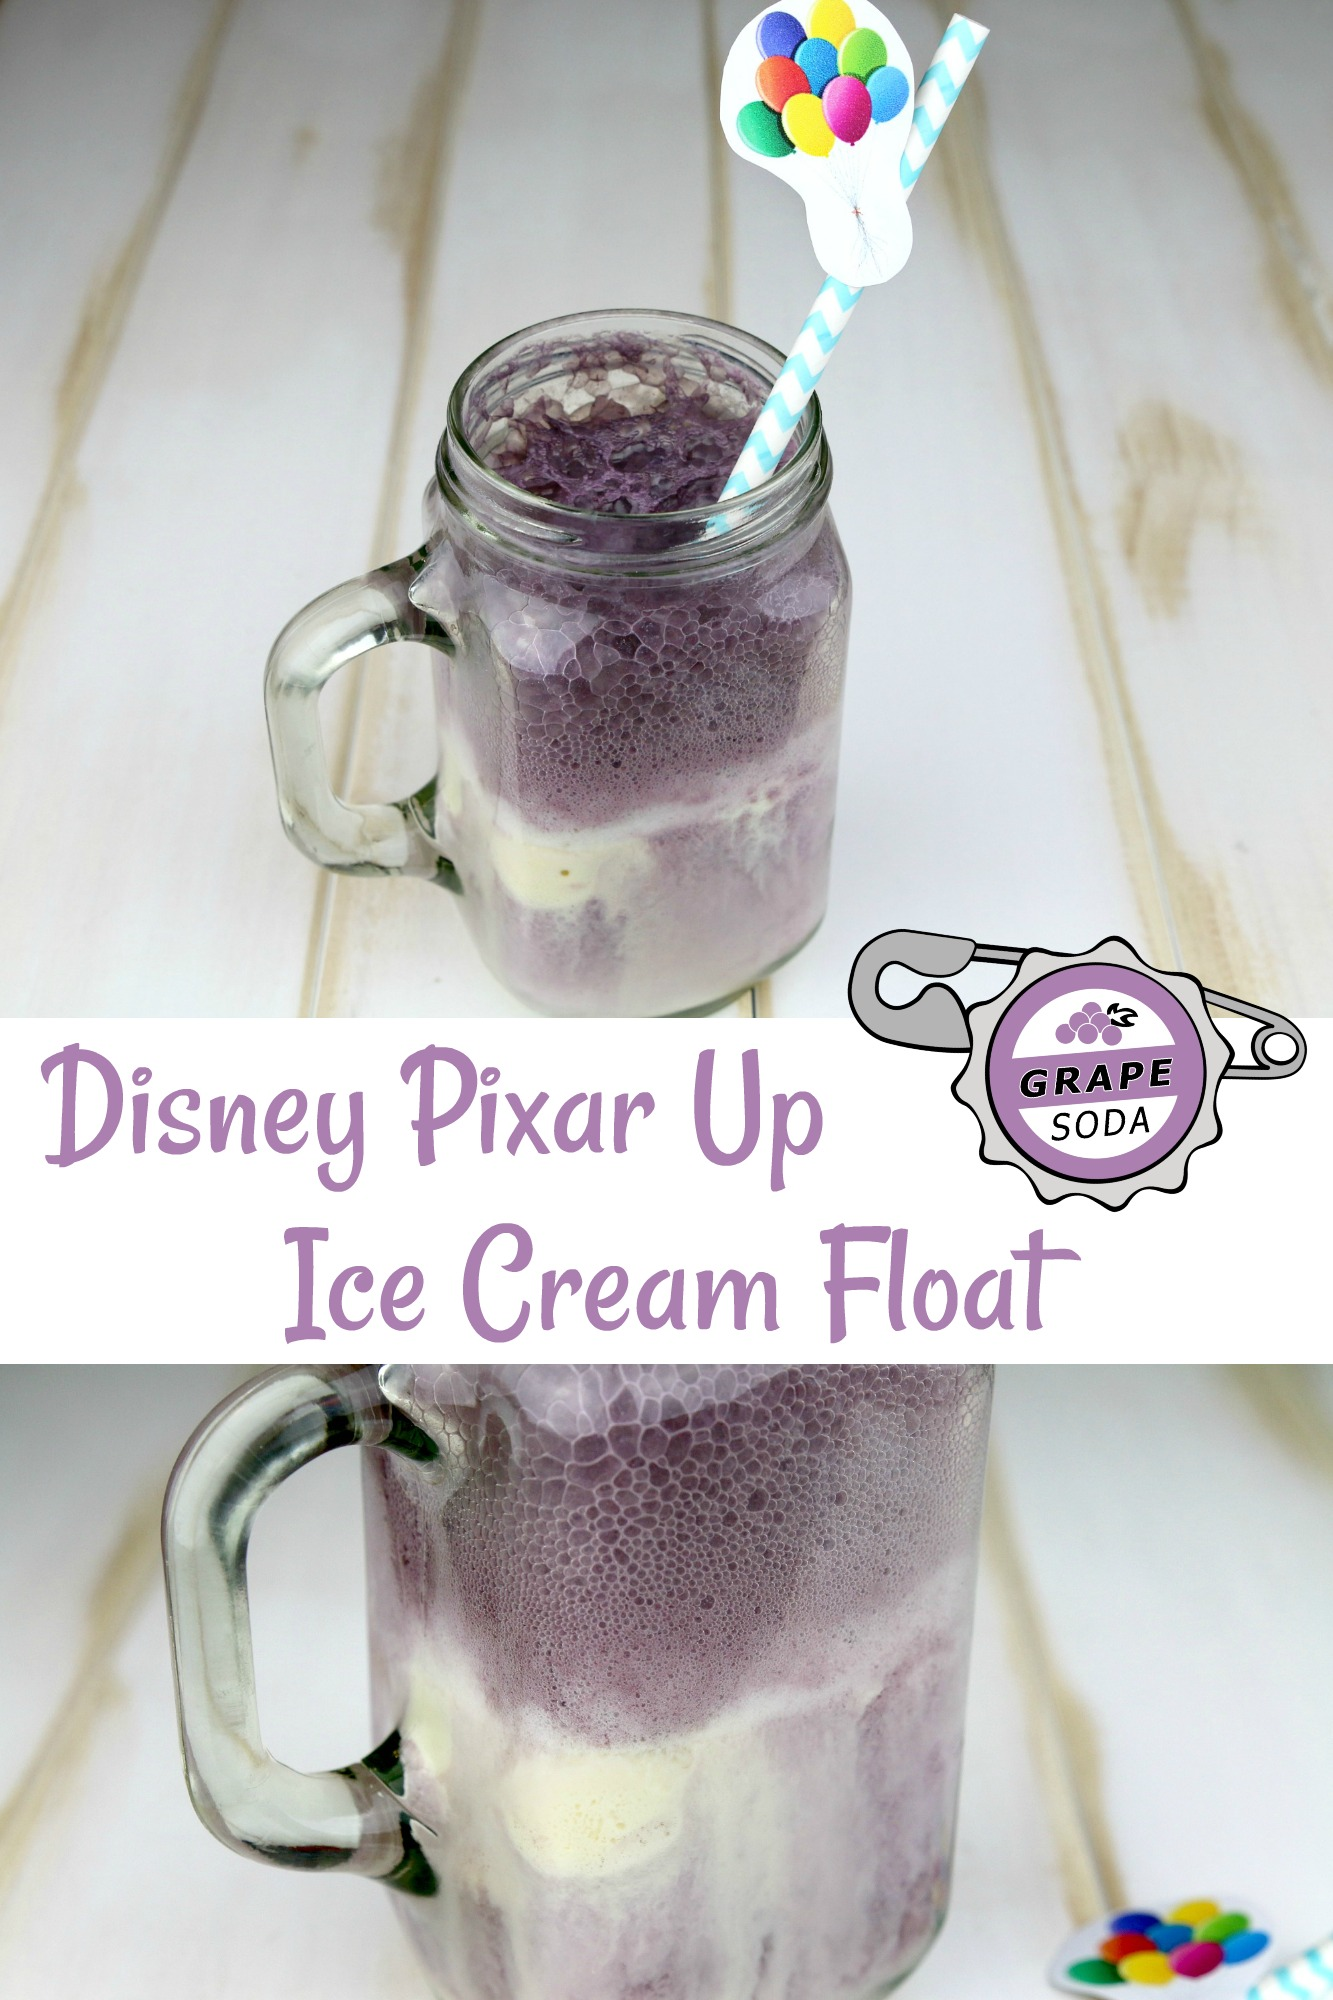 Disney Pixar Up Grape Soda Ice Cream Float